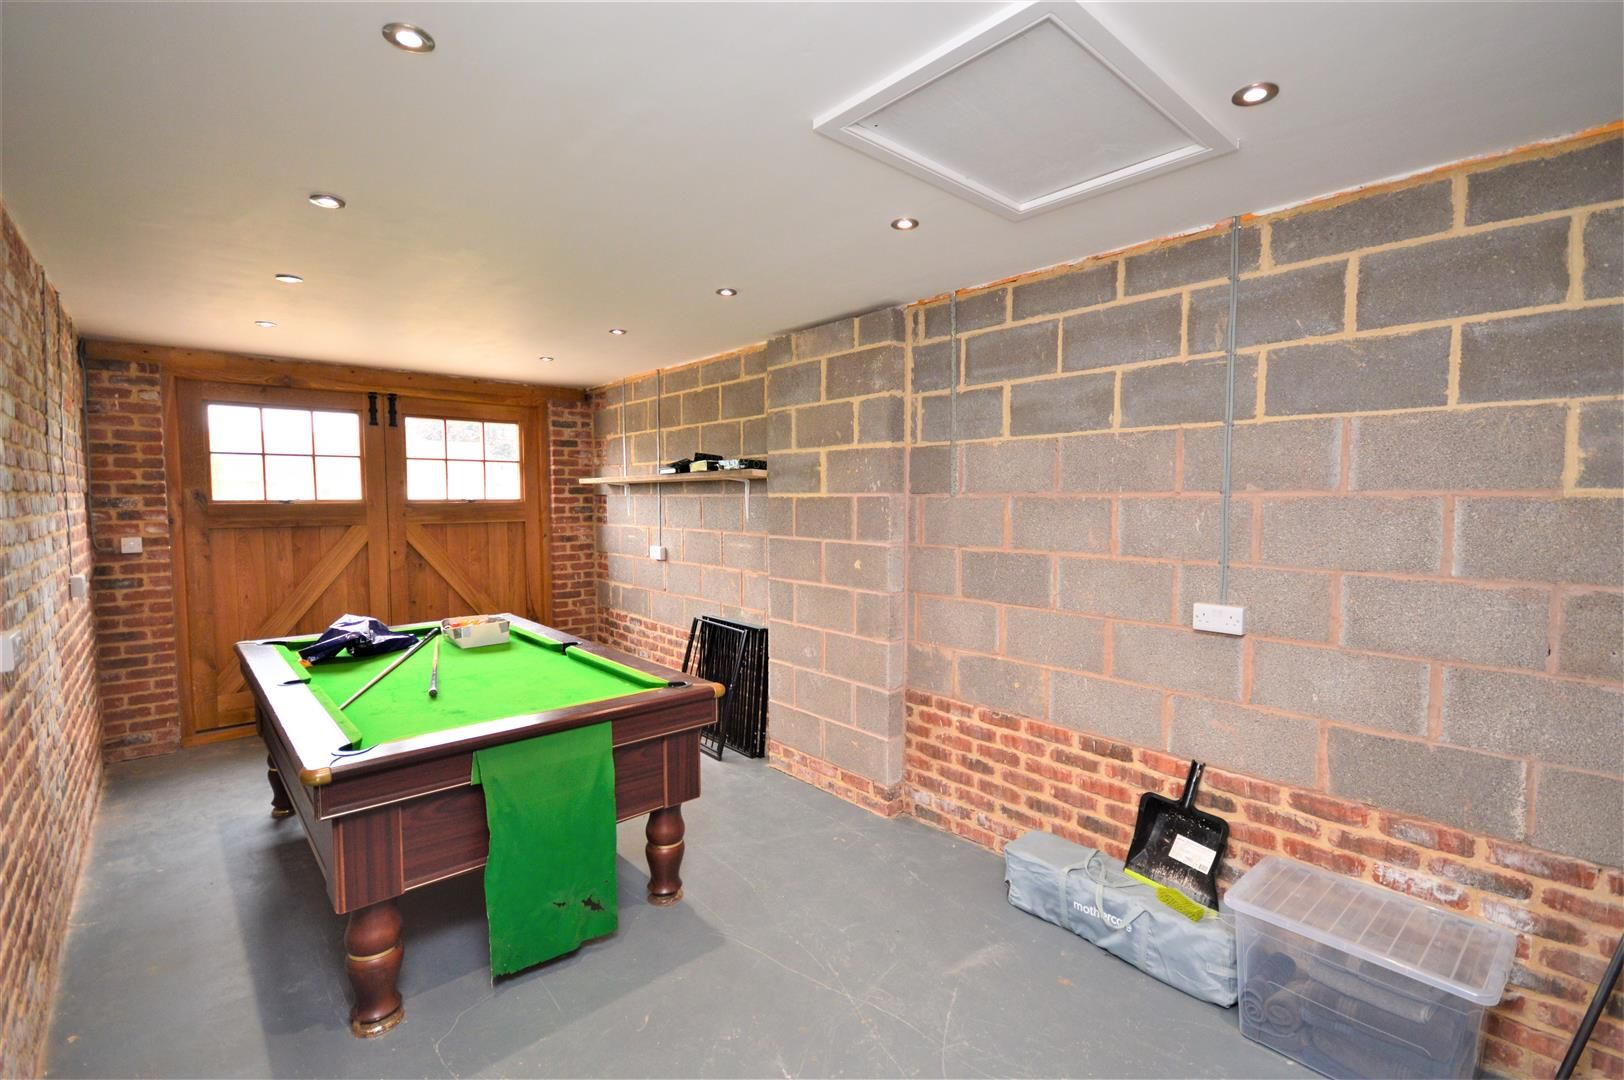 4 bed detached for sale in Marden  - Property Image 21